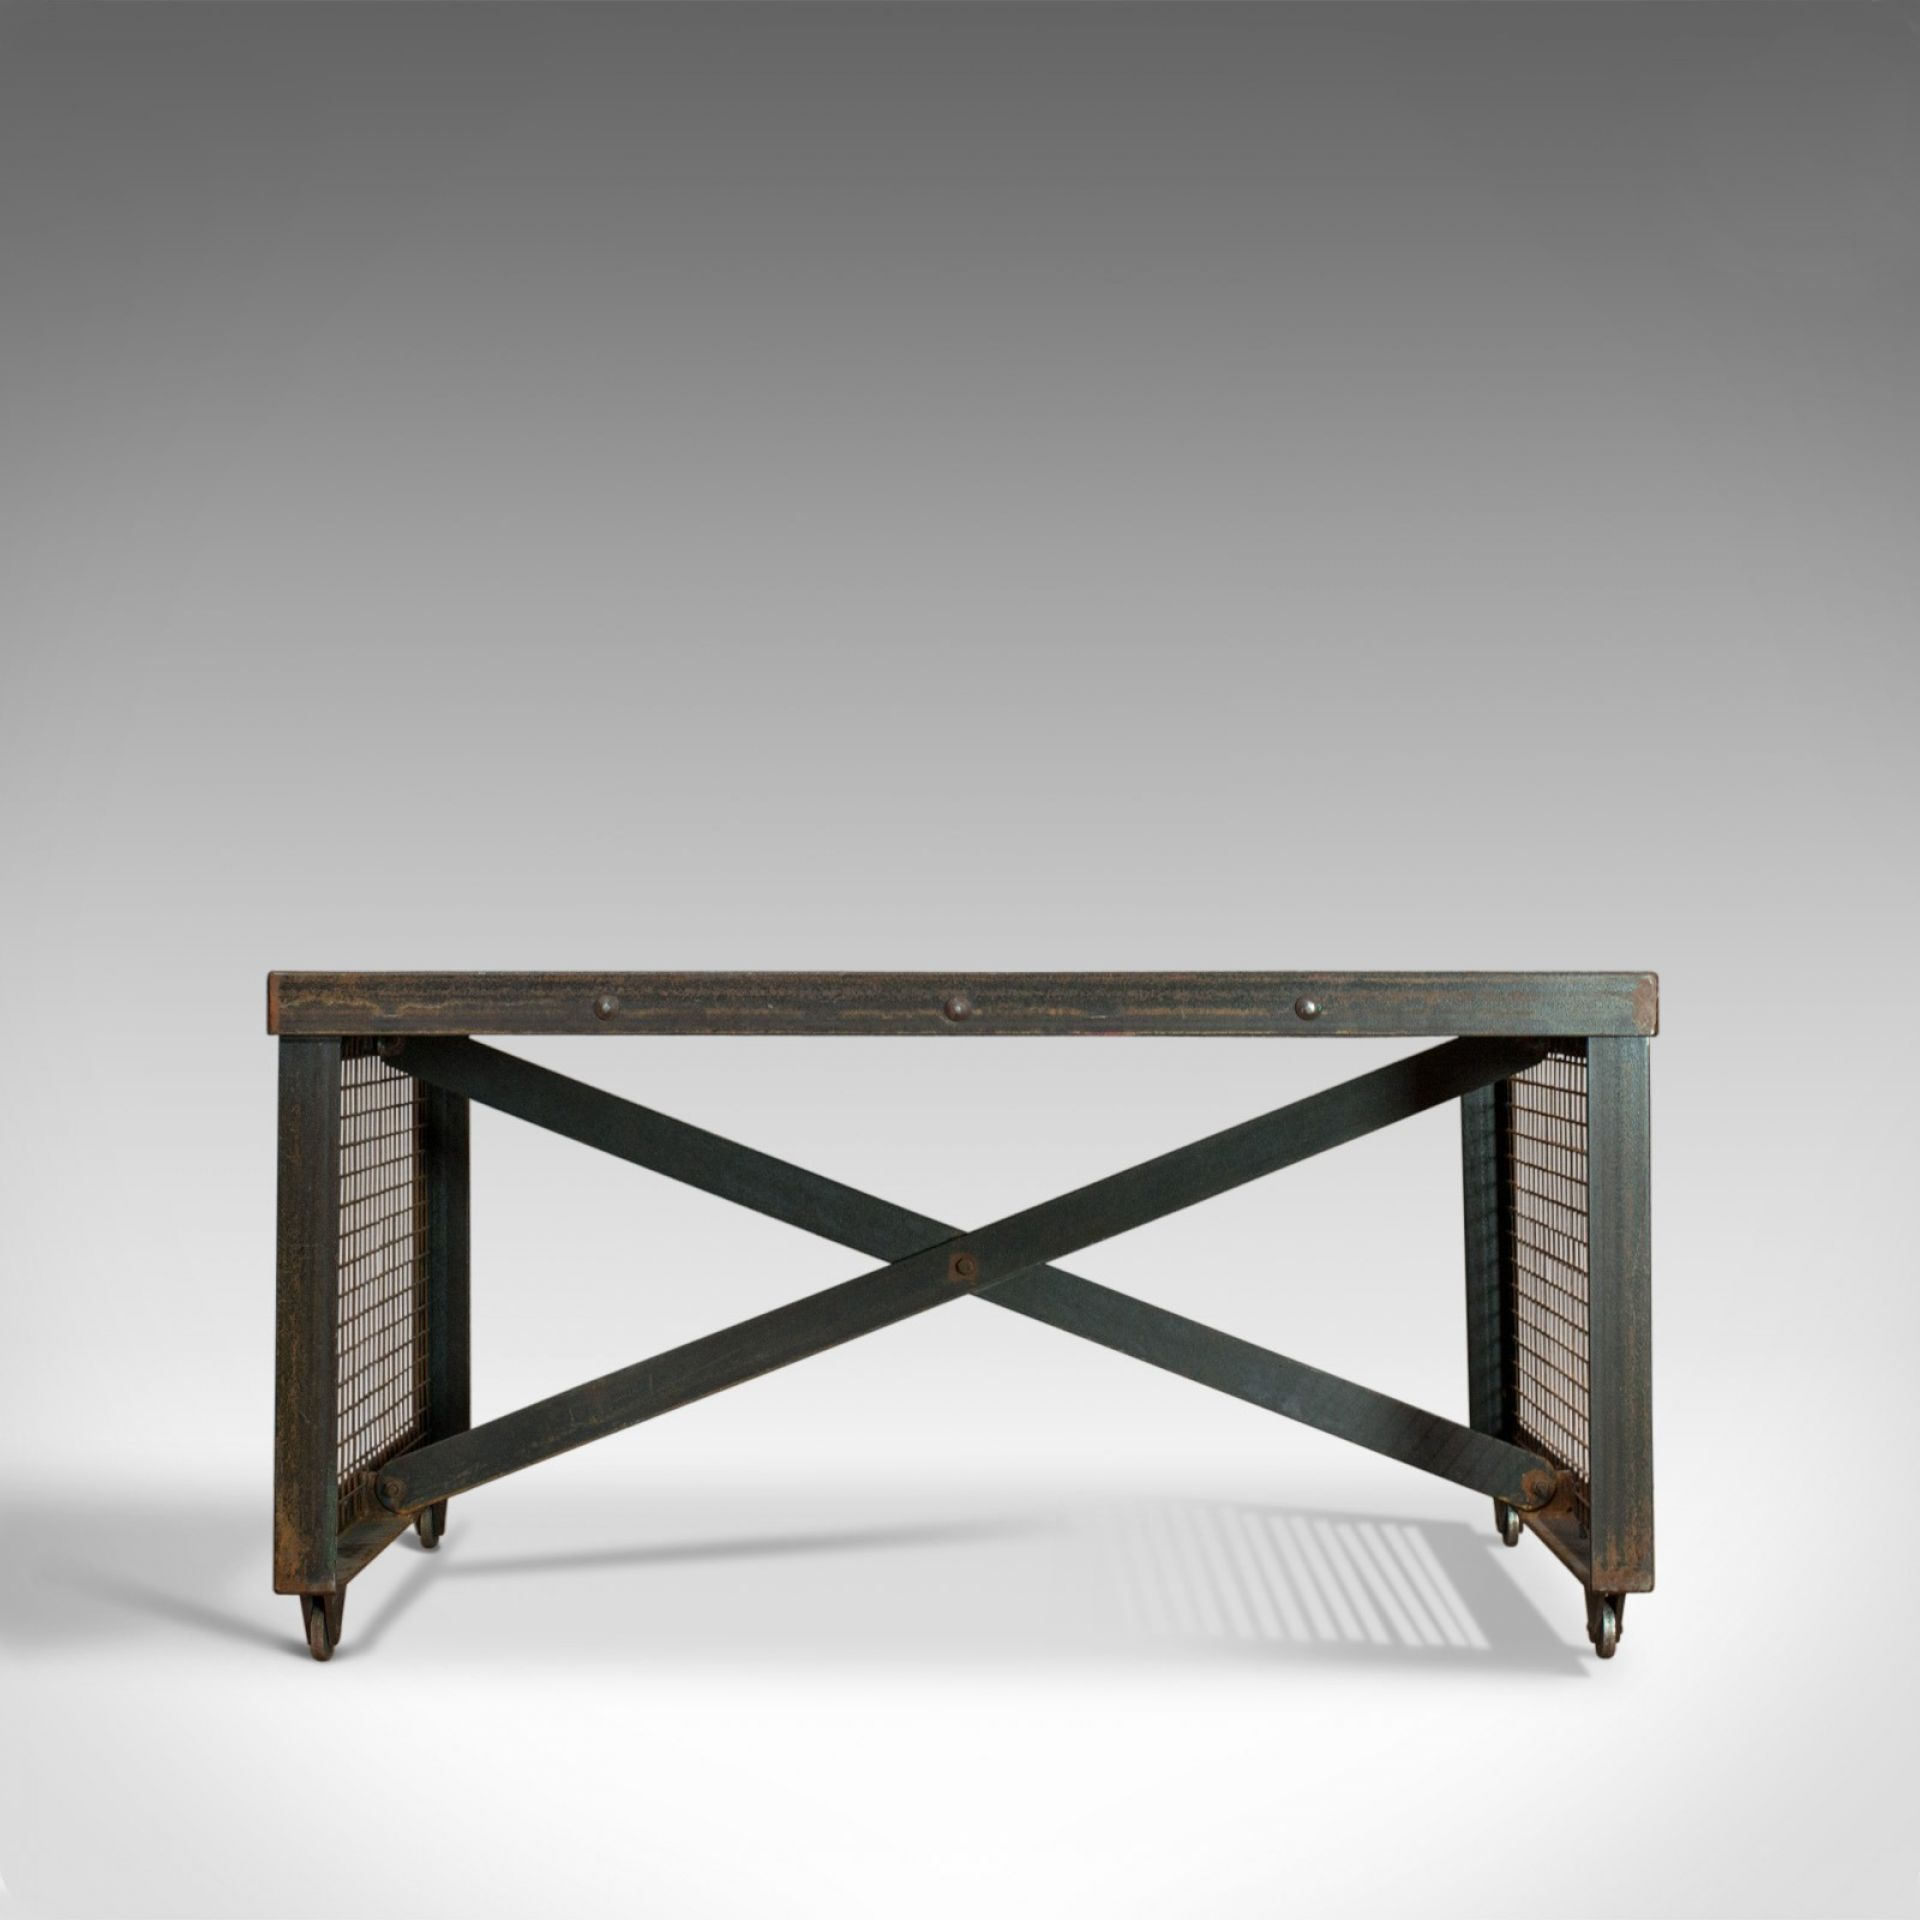 Vintage Industrial Coffee Table, English, Steel, Oak, 20th Century